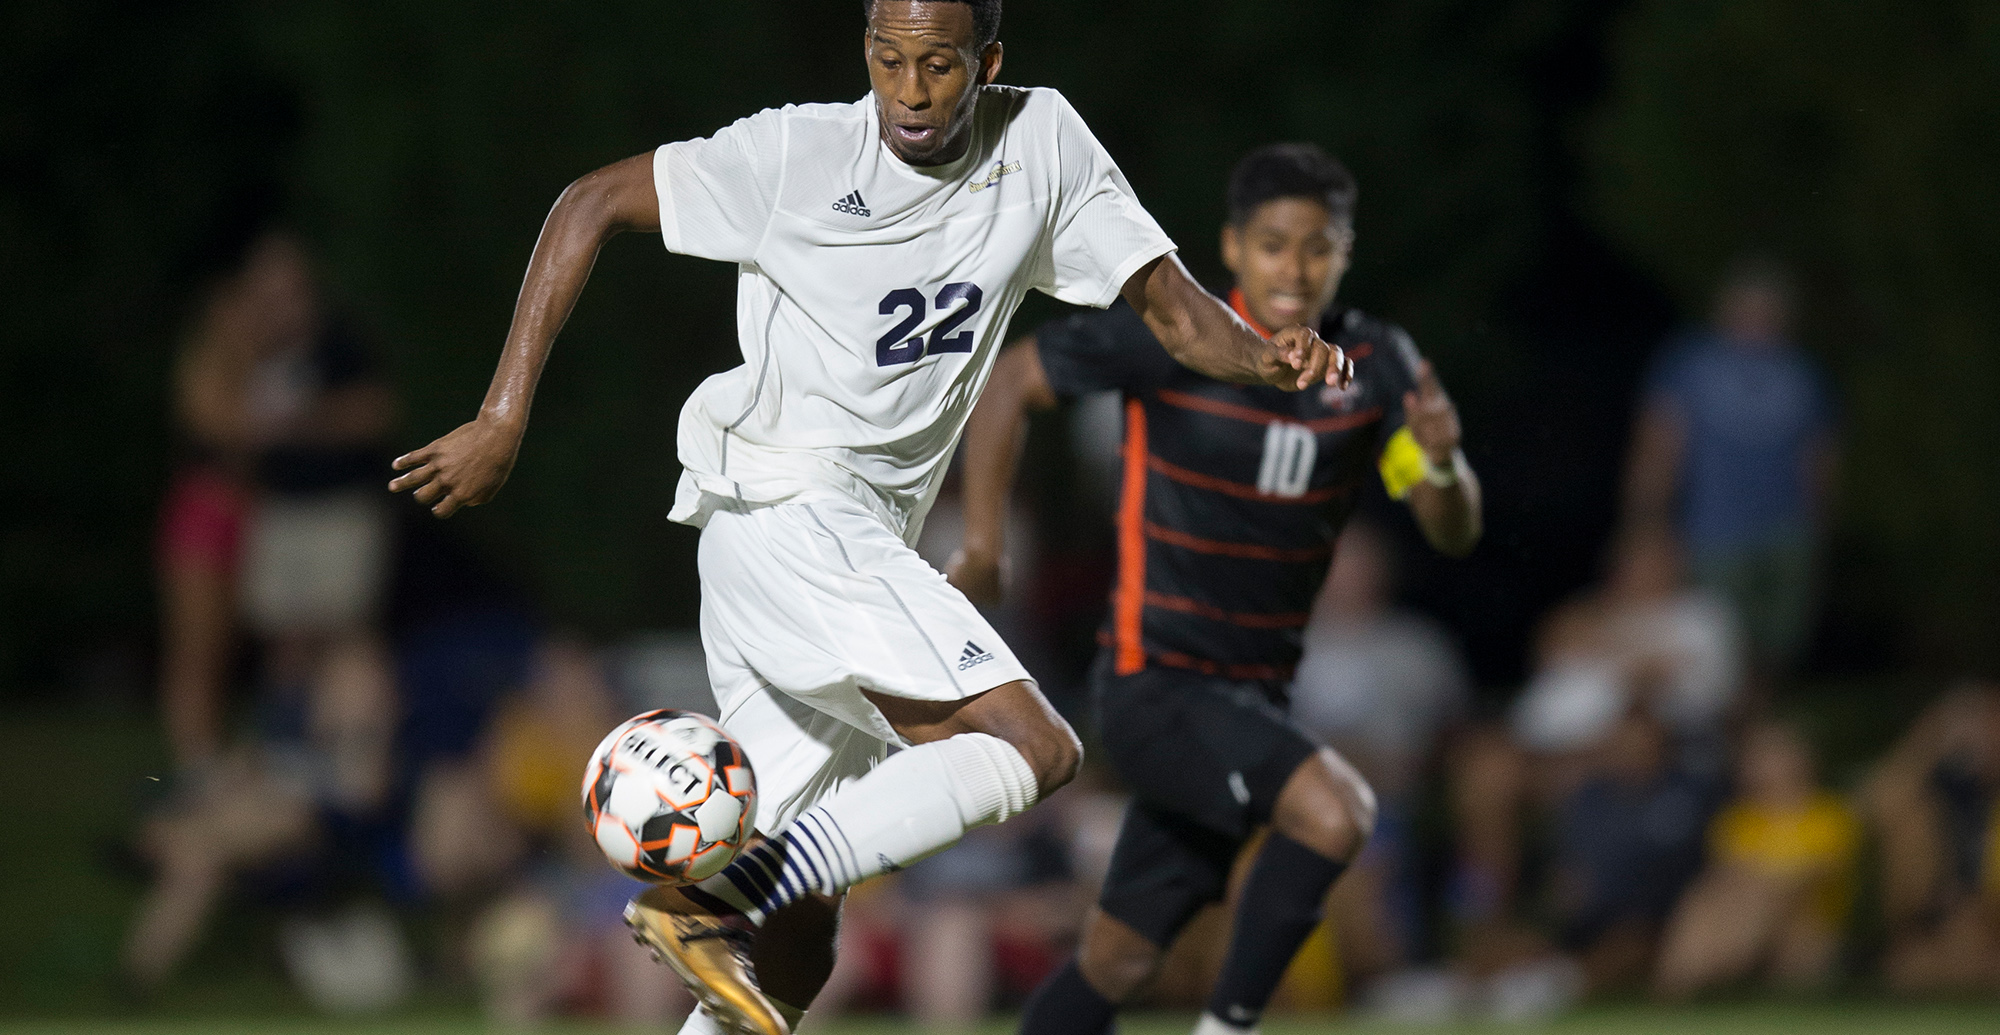 Clayton State Finds Crack in Defense, Defeats GSW 2-0